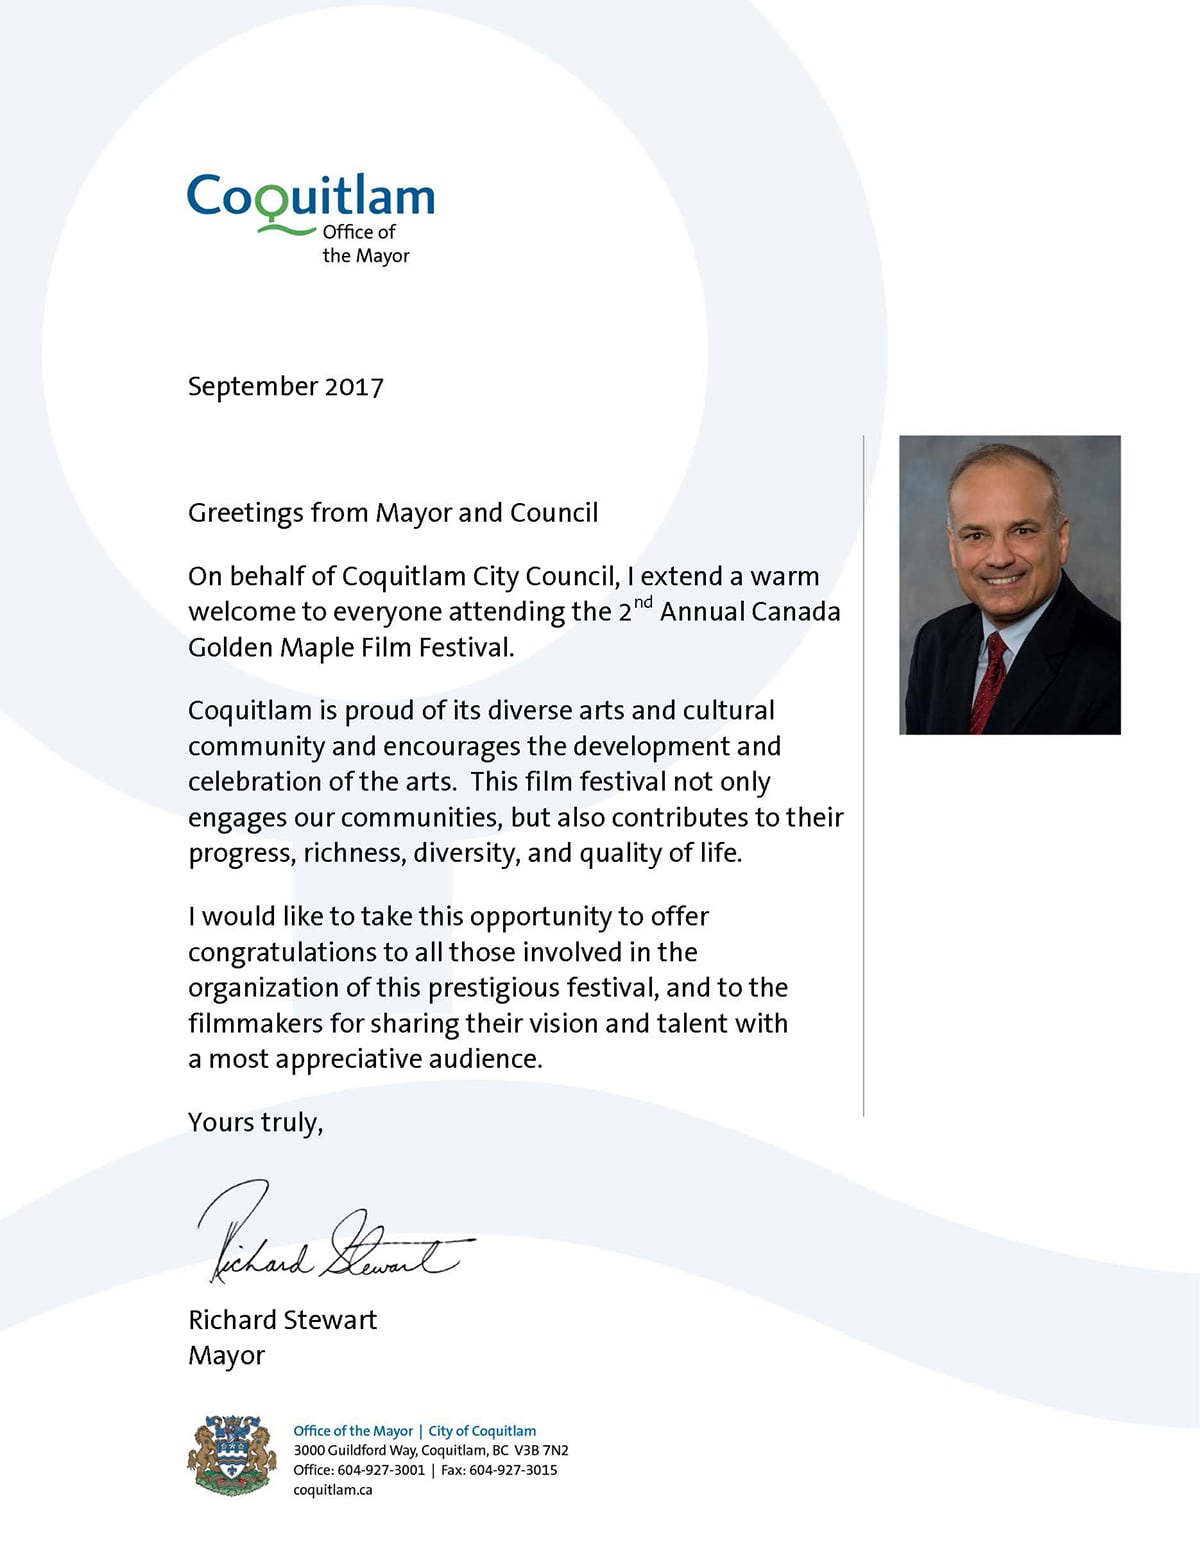 Congratulatory Letter from Richard Stewart, Mayor of Coquitlam